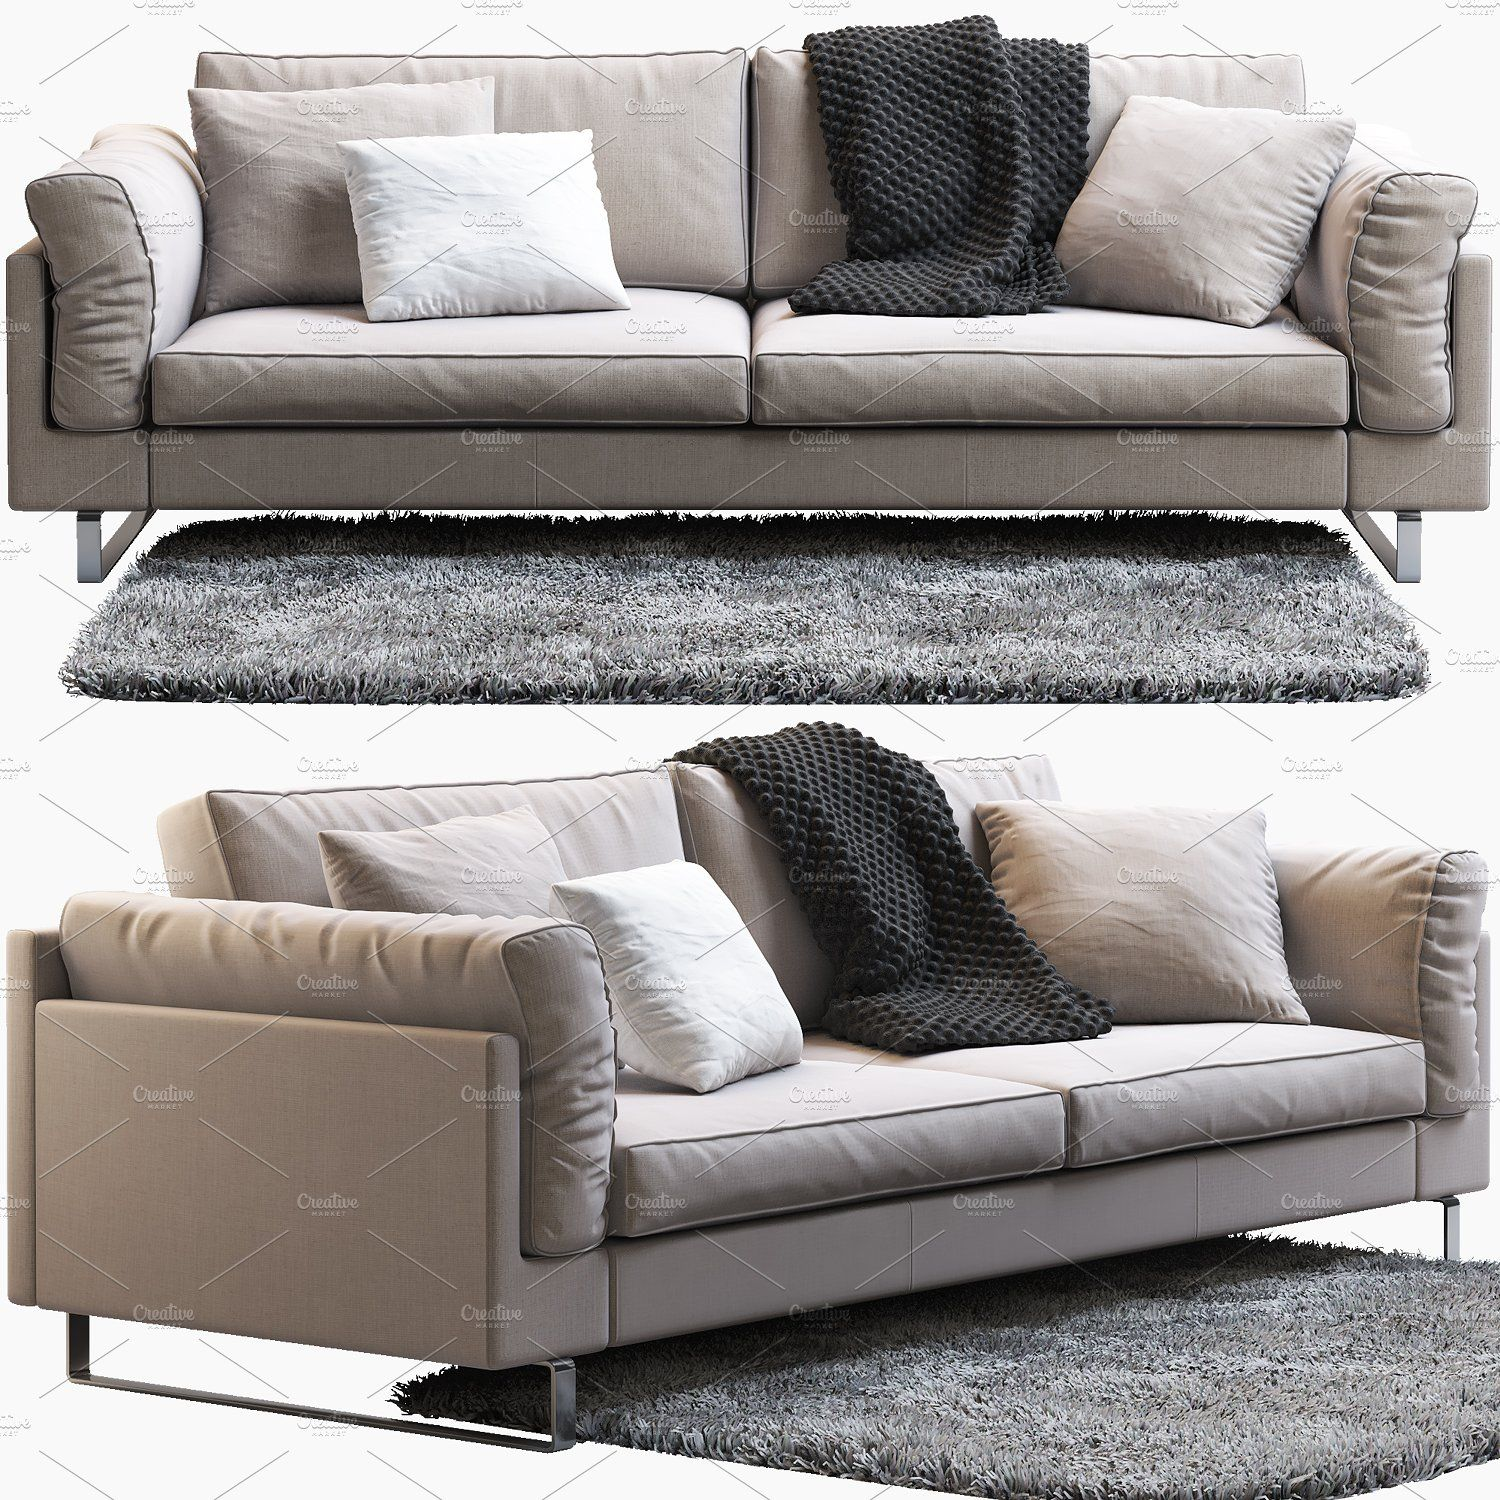 Direct Selling Living Room Furniture Leather L Shape Sofa Set Furniture Prices China Couch M Furniture Design Living Room Sofa Set Living Room Furniture Sofas